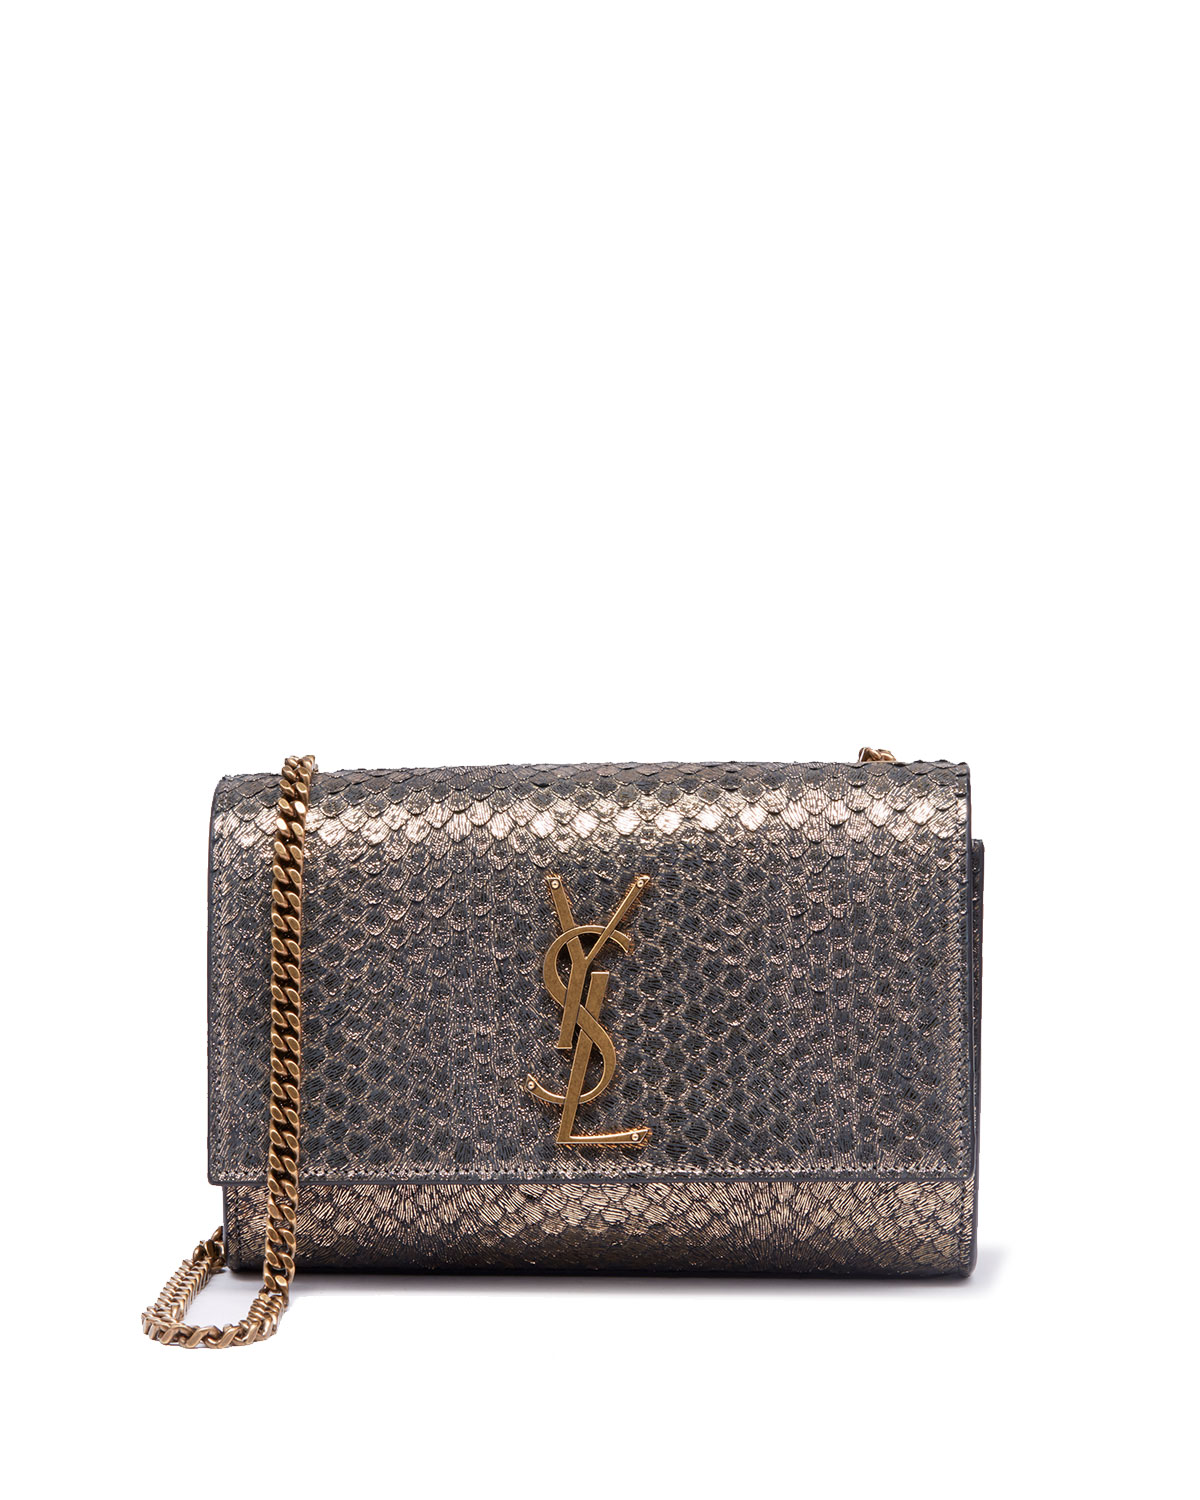 5e0e03441620 Saint Laurent Kate Monogram Ysl Small Python-Effect Crossbody Bag In Gold